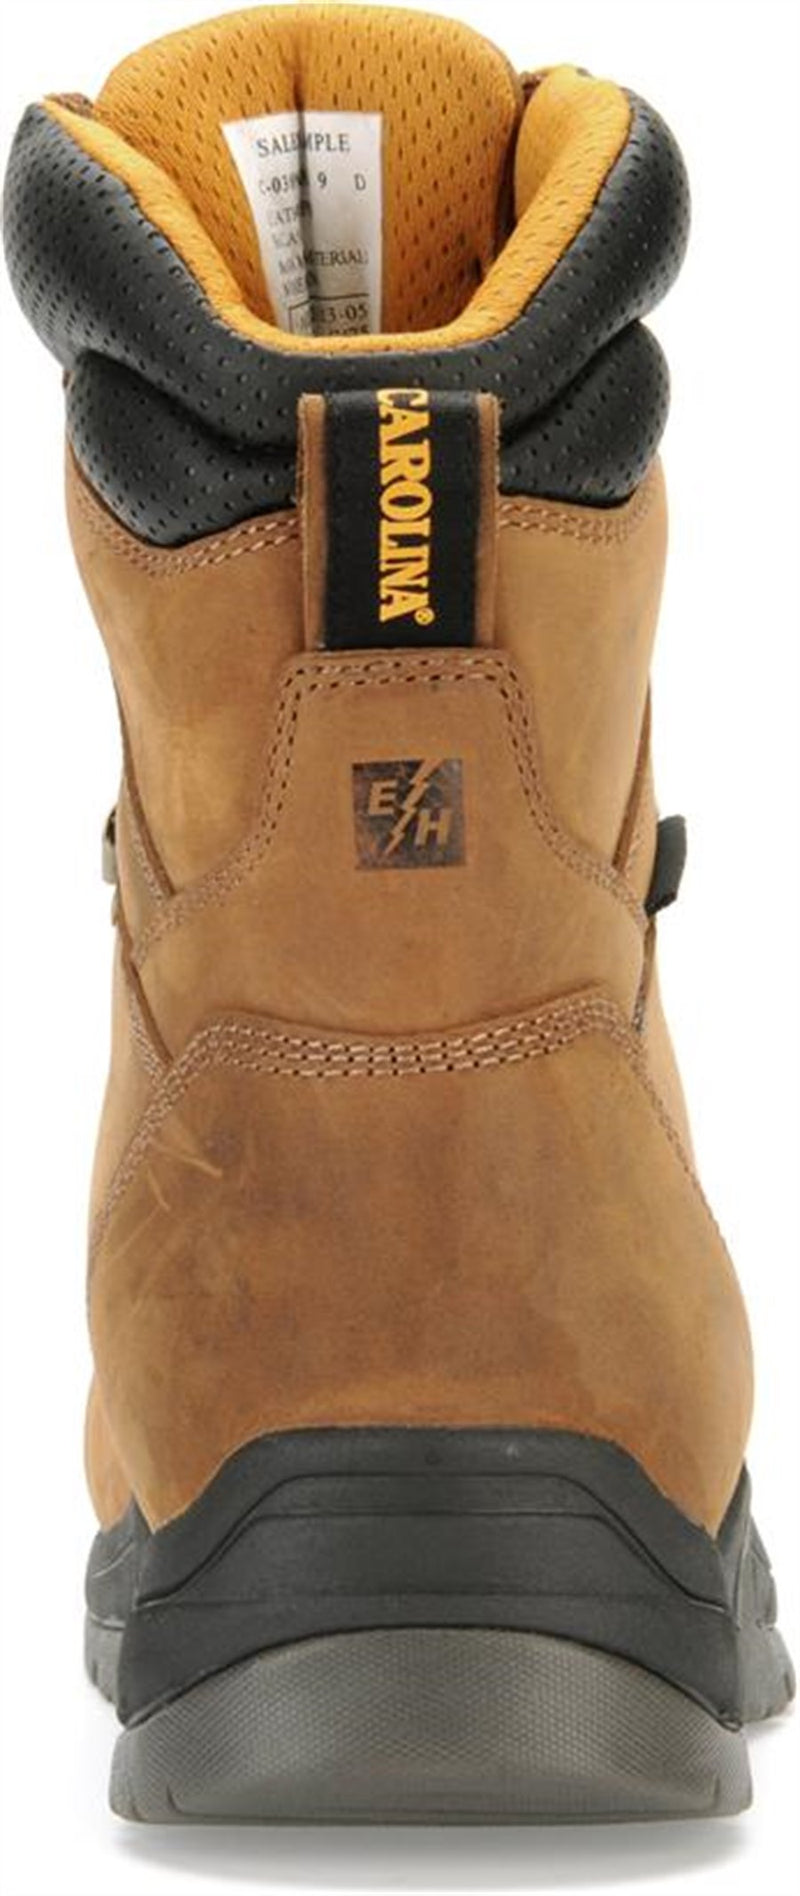 Carolina CA8020 Bruno Hi 8 Inch Waterproof Work Boot